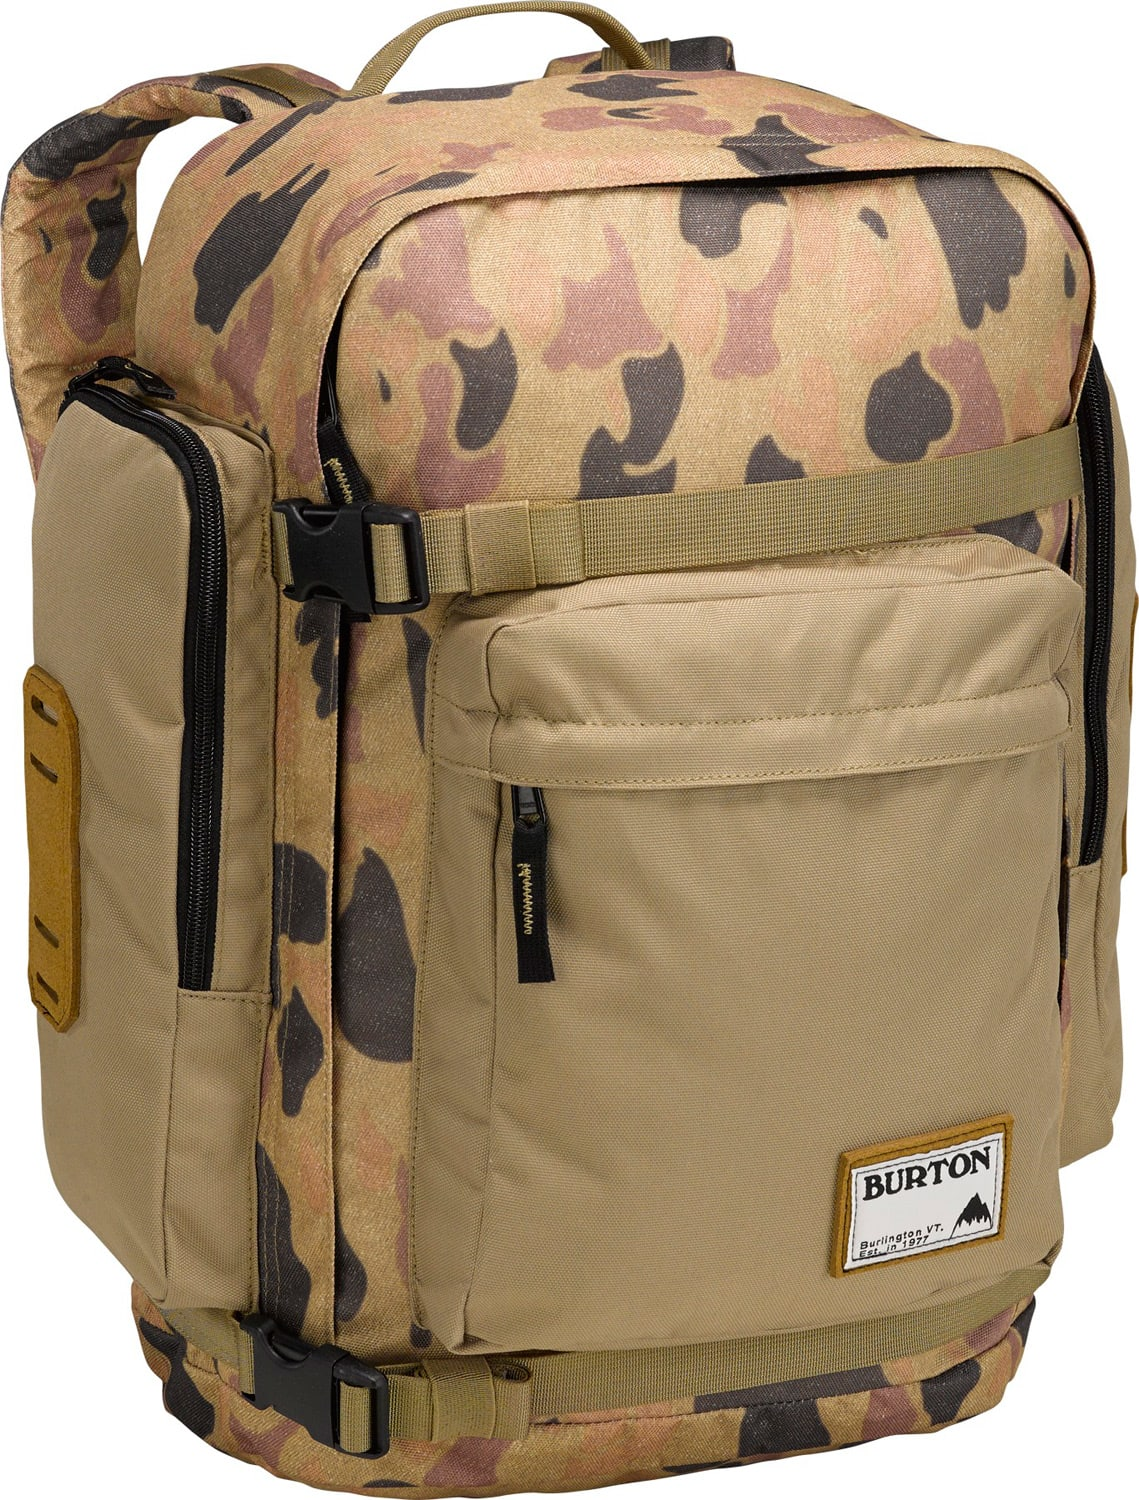 Burton Canyon Backpack Duck Hunter Camo 28L